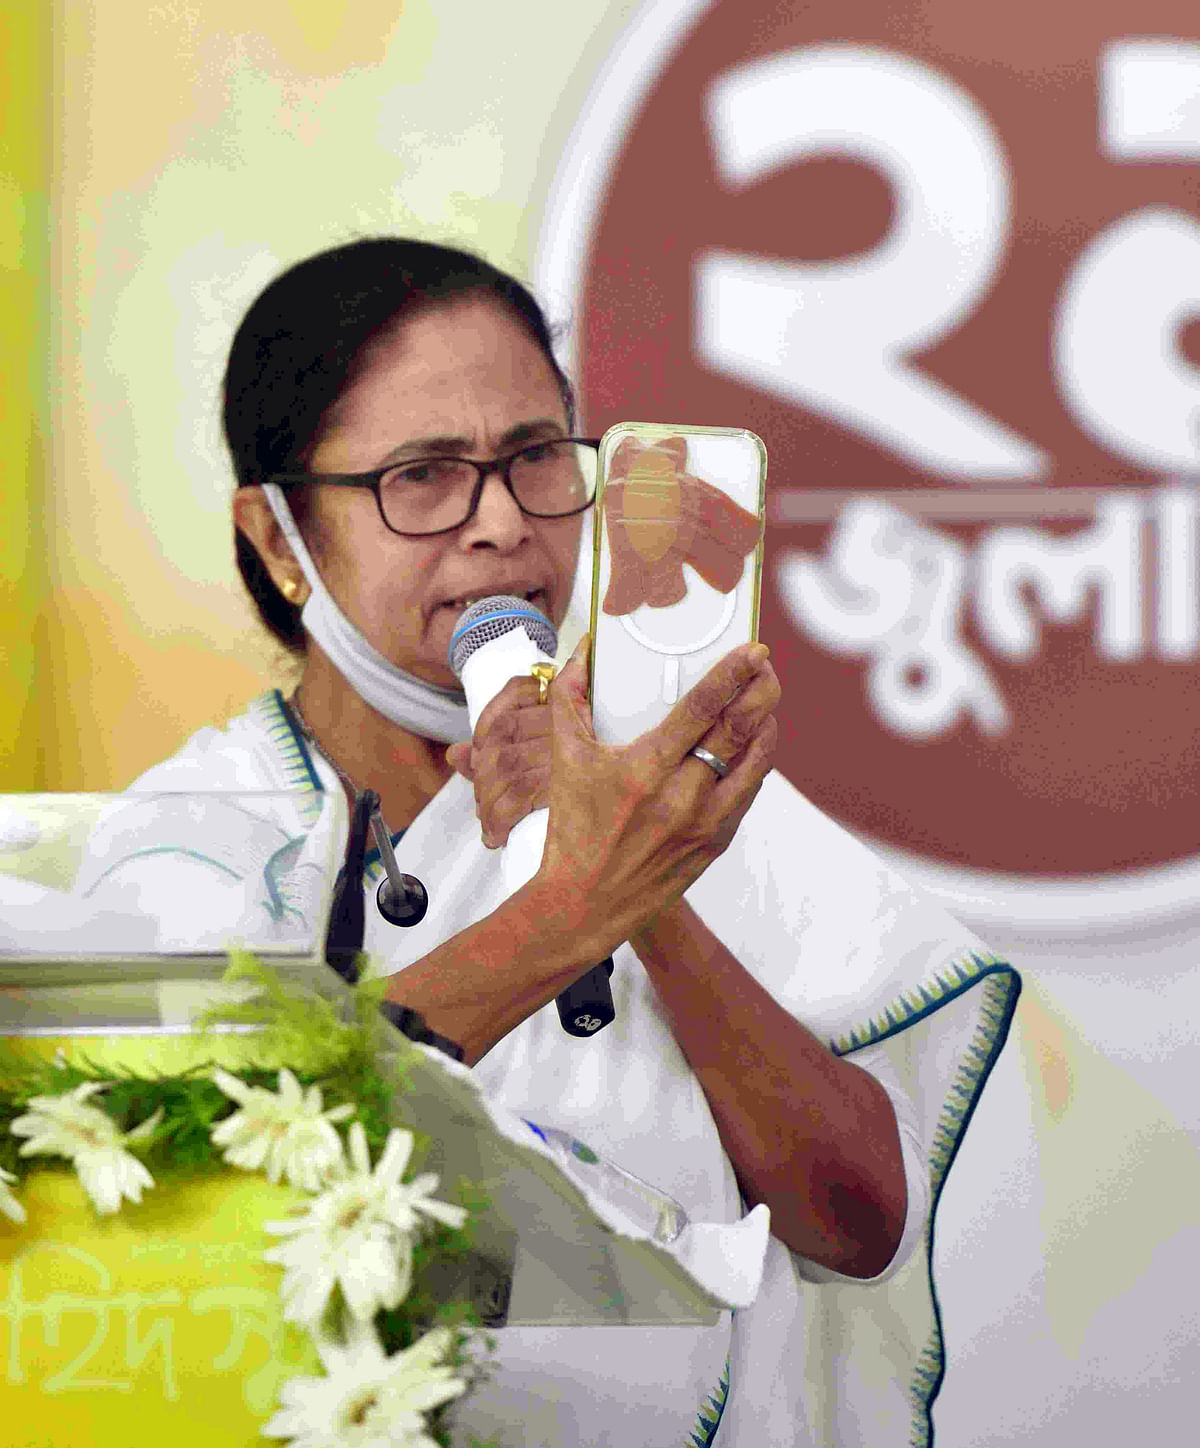 Mamata Banerjee calls for opposition unity to defeat BJP; Cong, NCP, RJD, DMK leaders attend TMC' Martyrs' Day event in Delhi